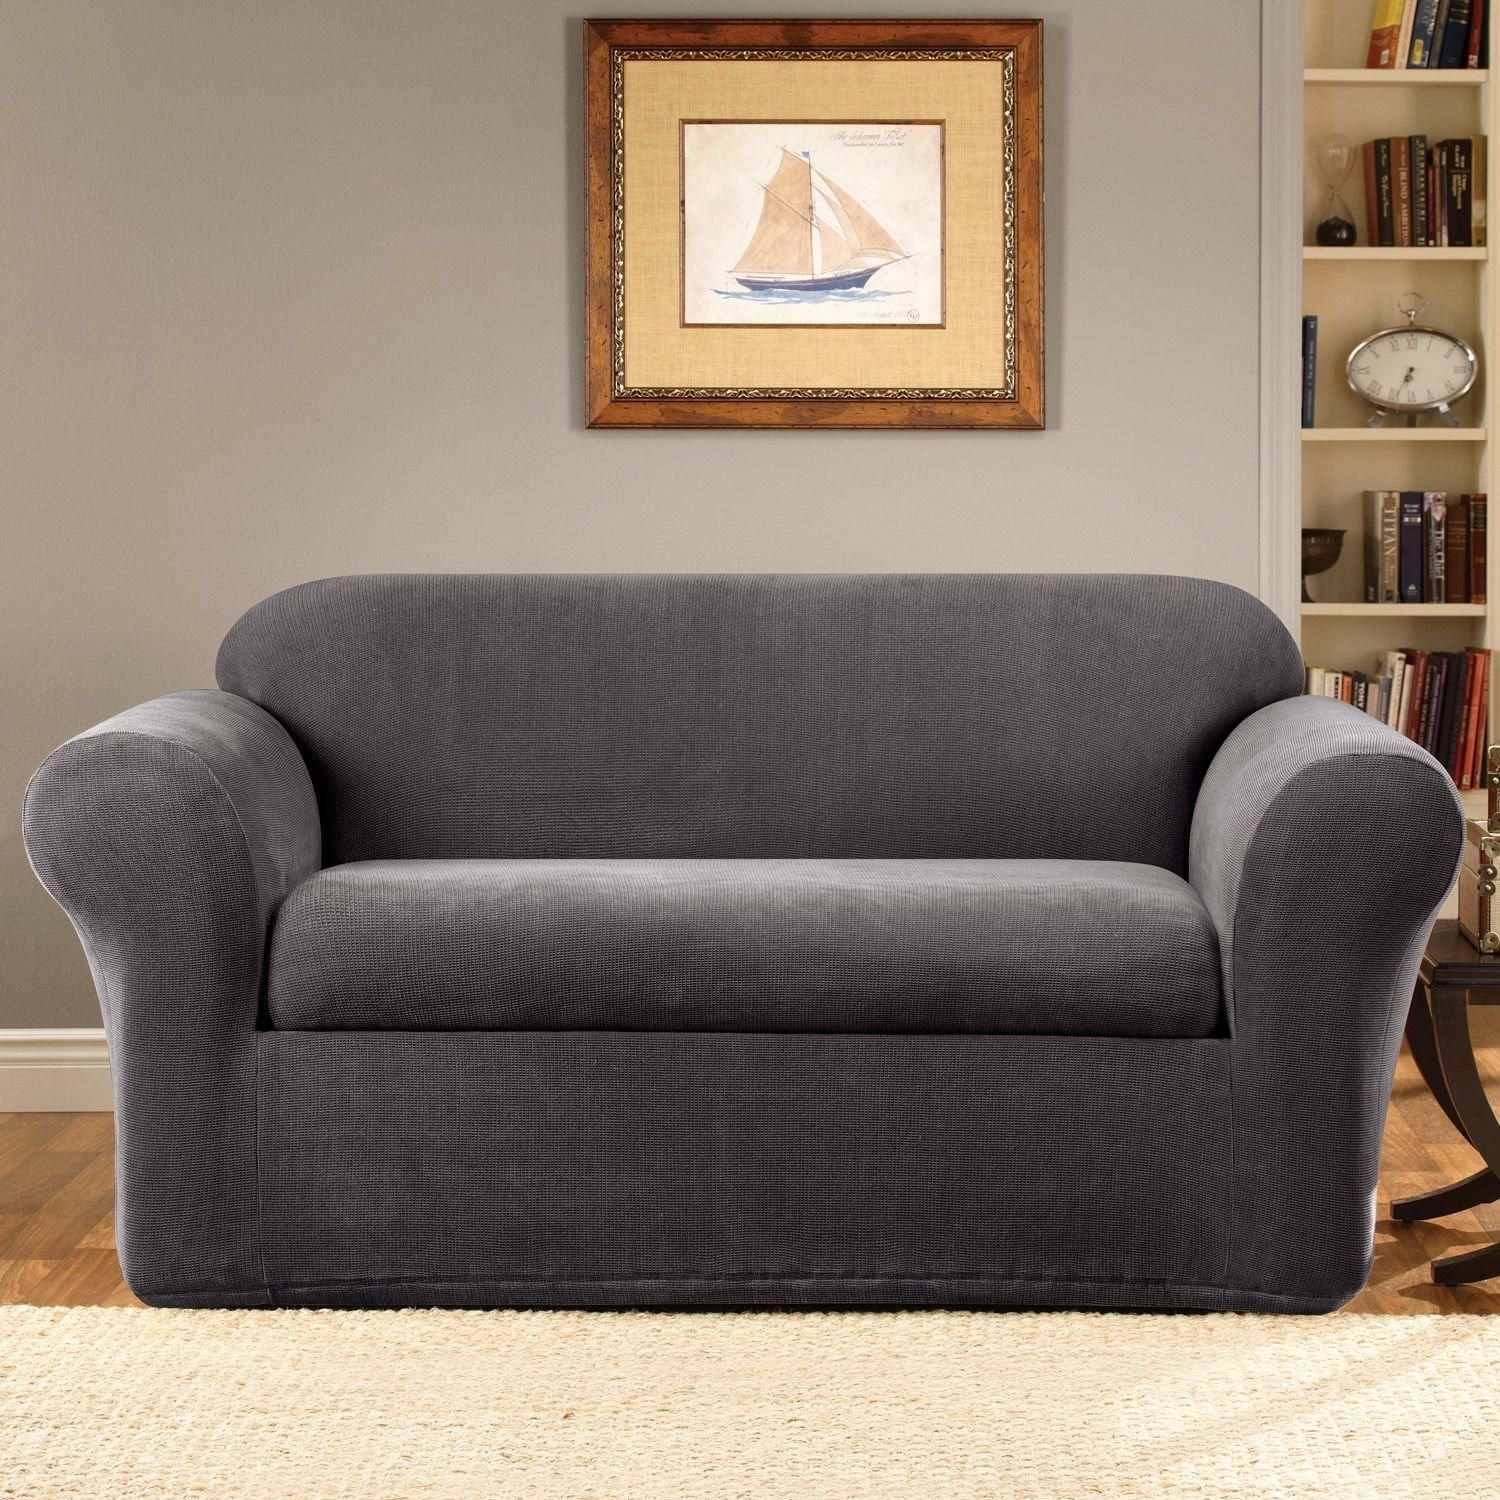 Sure Fit Stretch Suede 2 Piece Sofa Slipcover Chocolate In 2 Piece Sofa Covers (Image 23 of 27)